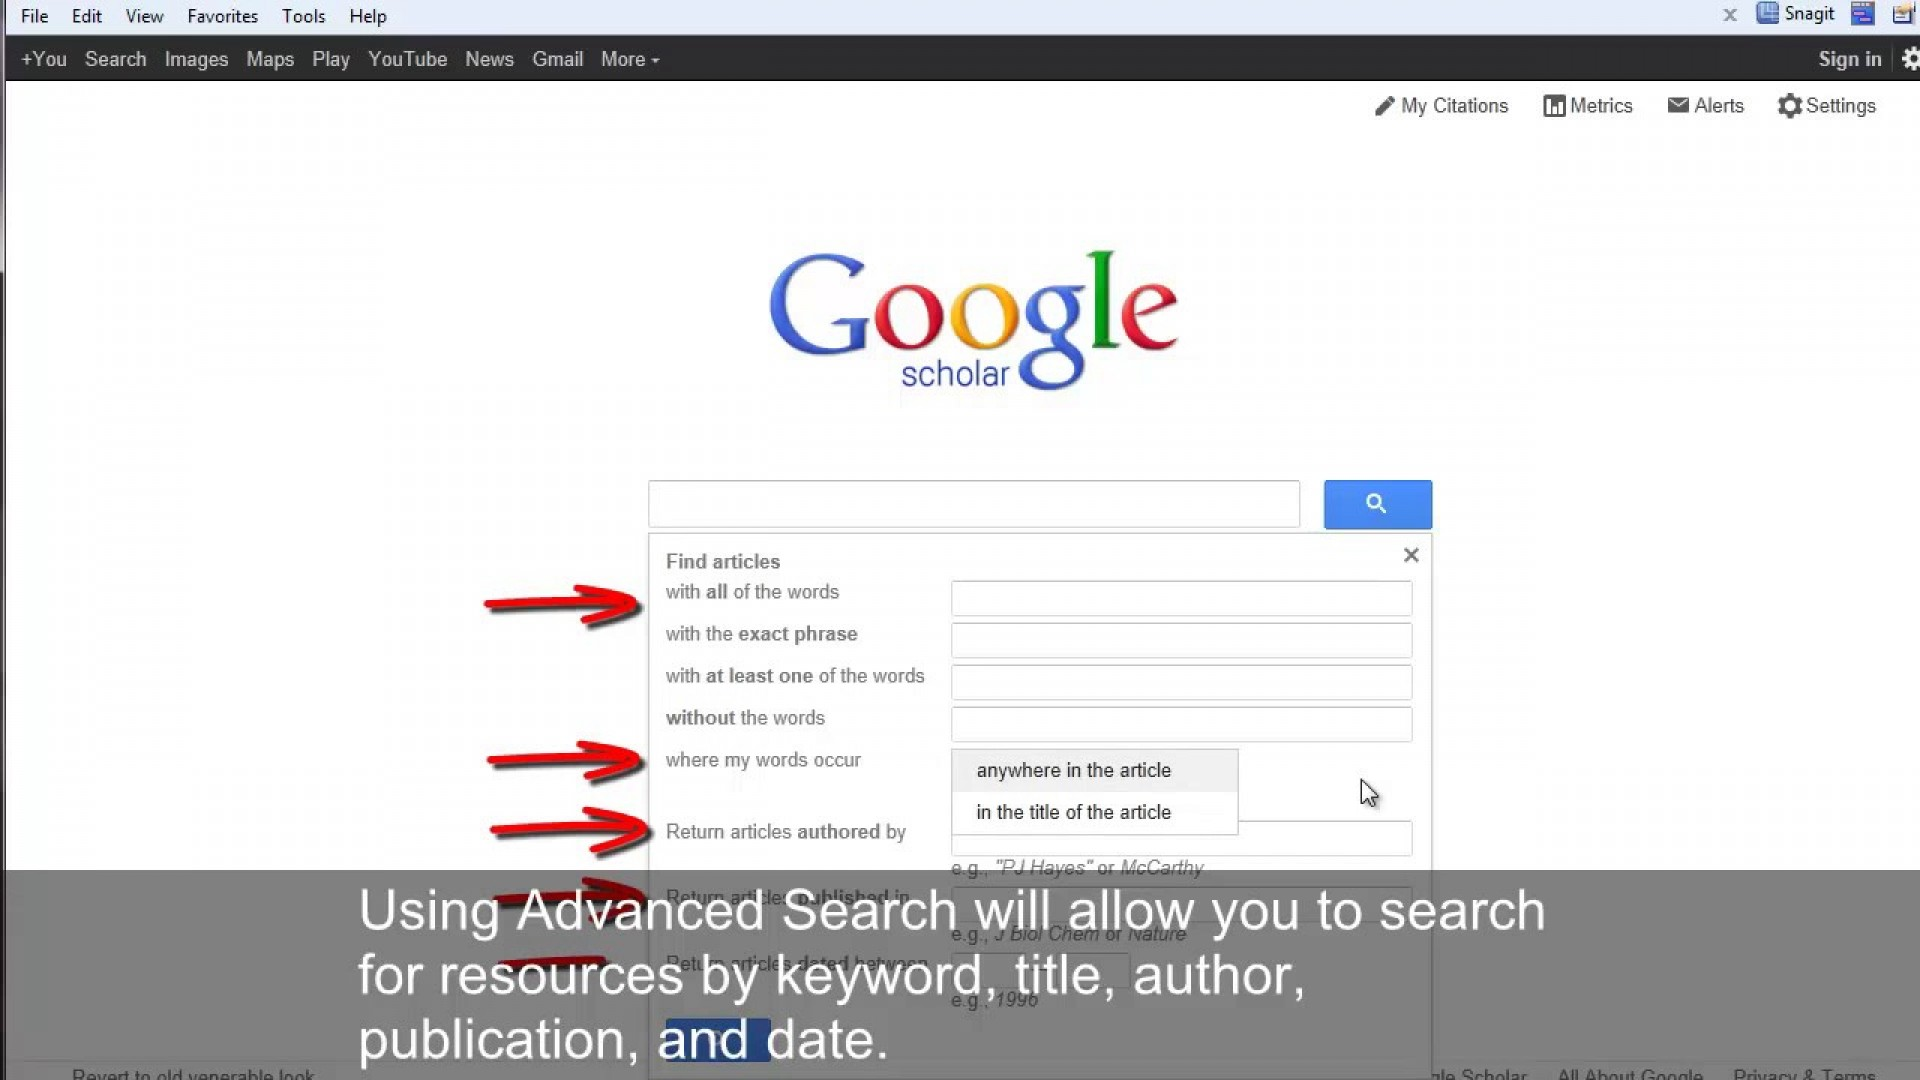 008 How To Publish Research Paper On Google Scholar Dreaded 1920